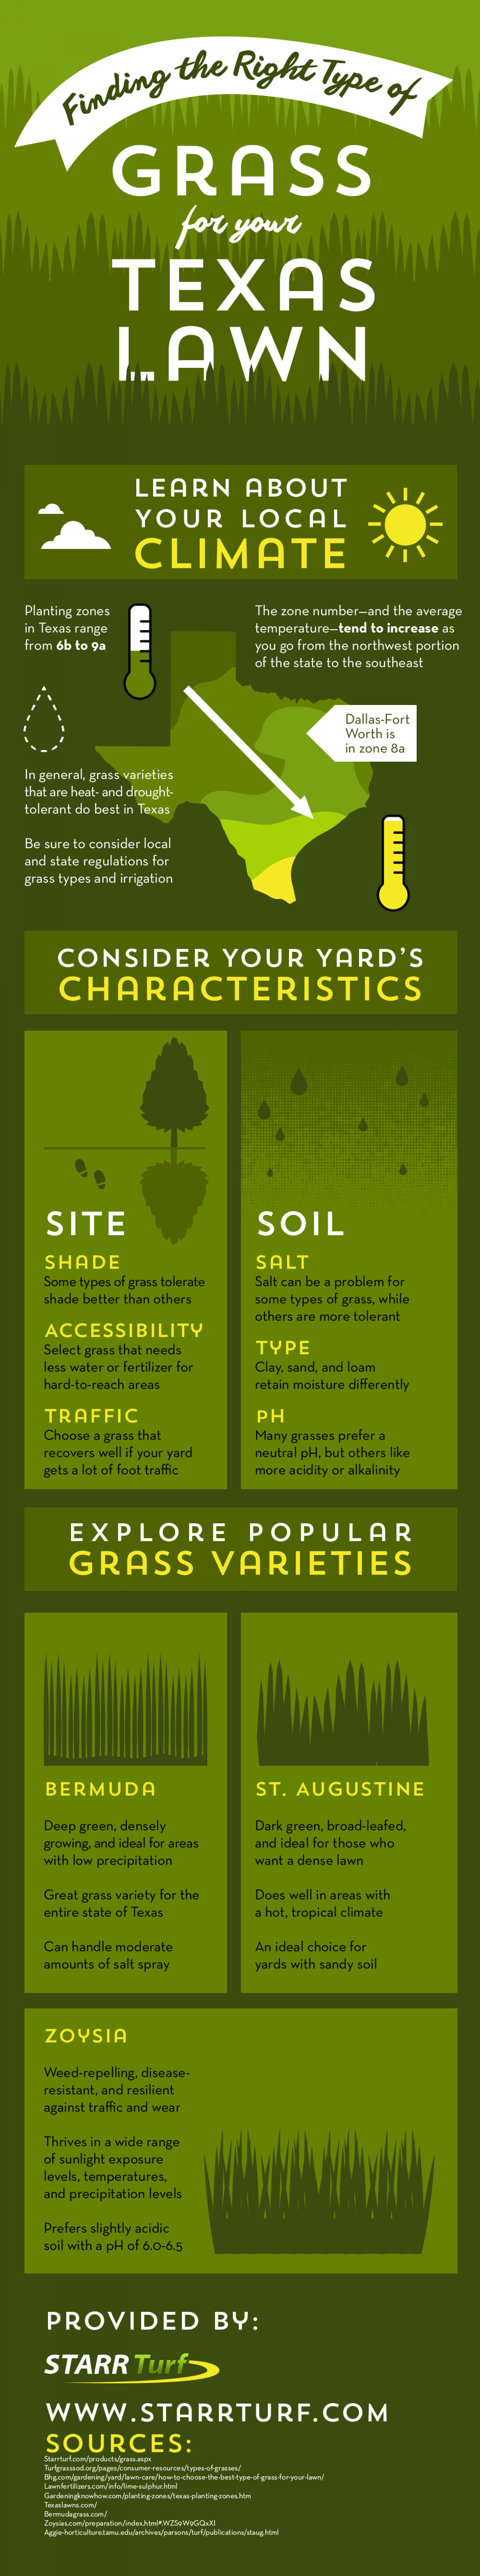 Finding the Right Type of Grass for Your Texas Lawn Infographic